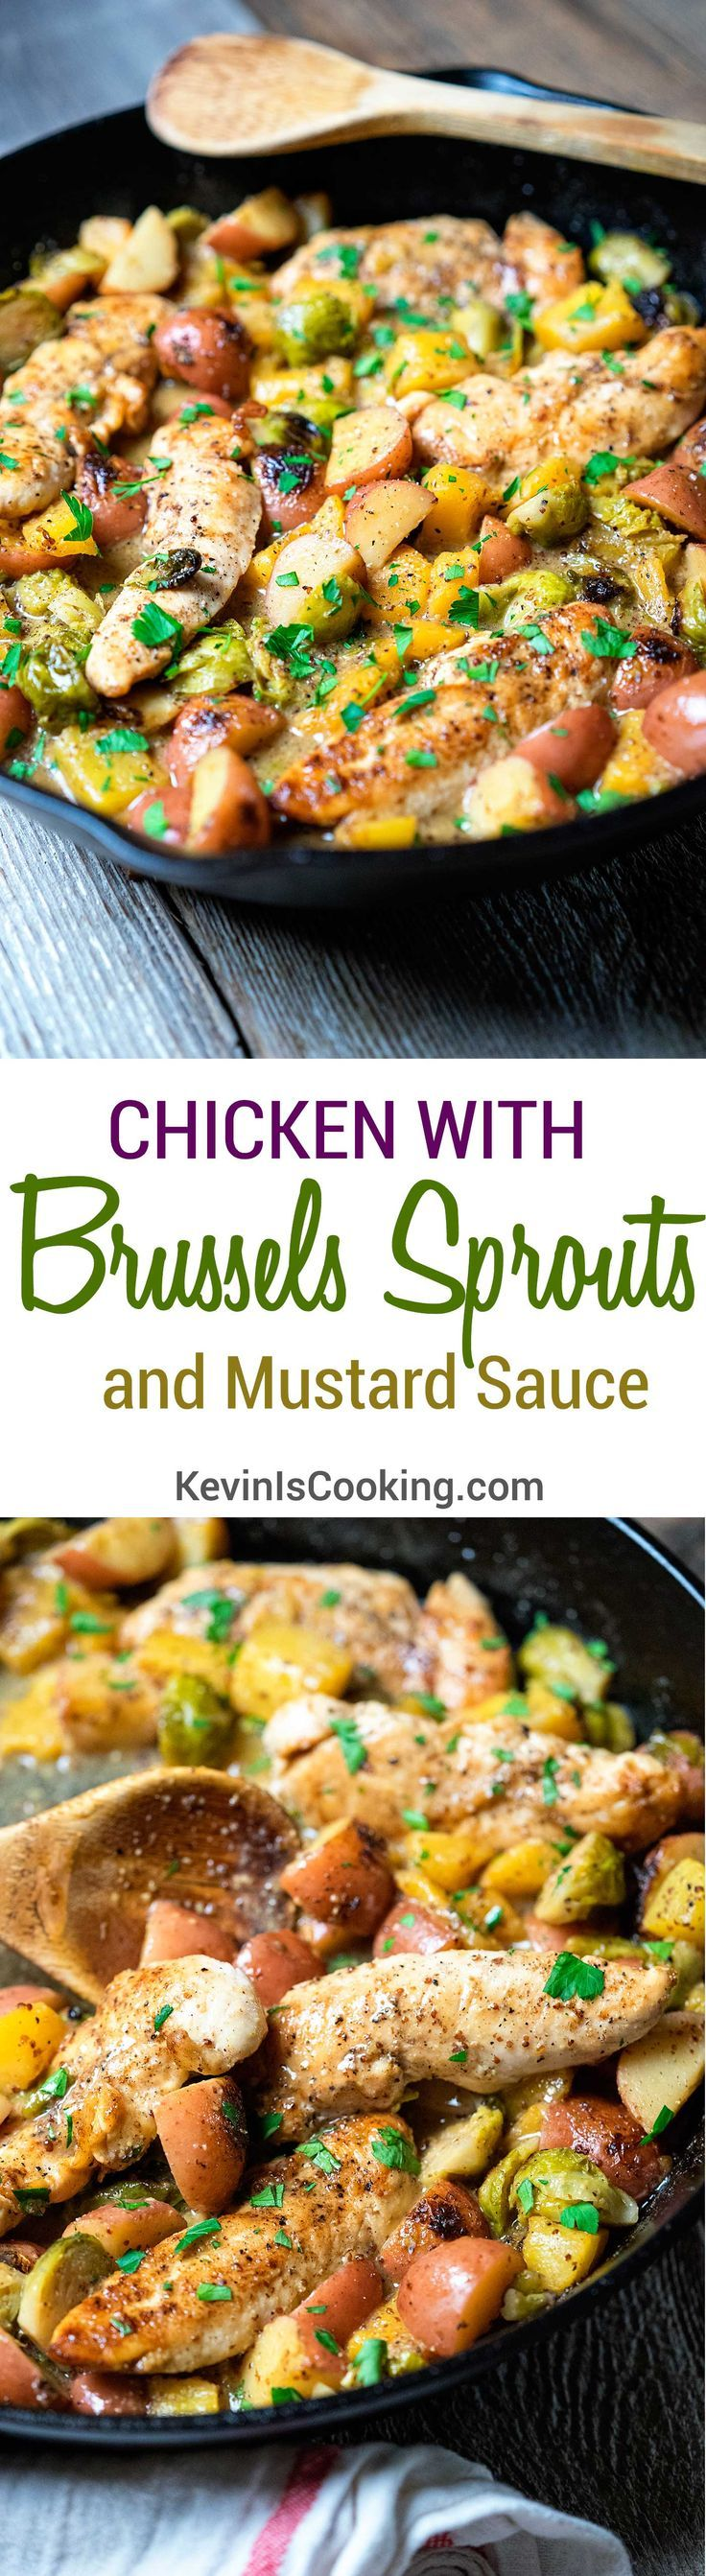 Chicken with Brussels Sprouts and Mustard Sauce.